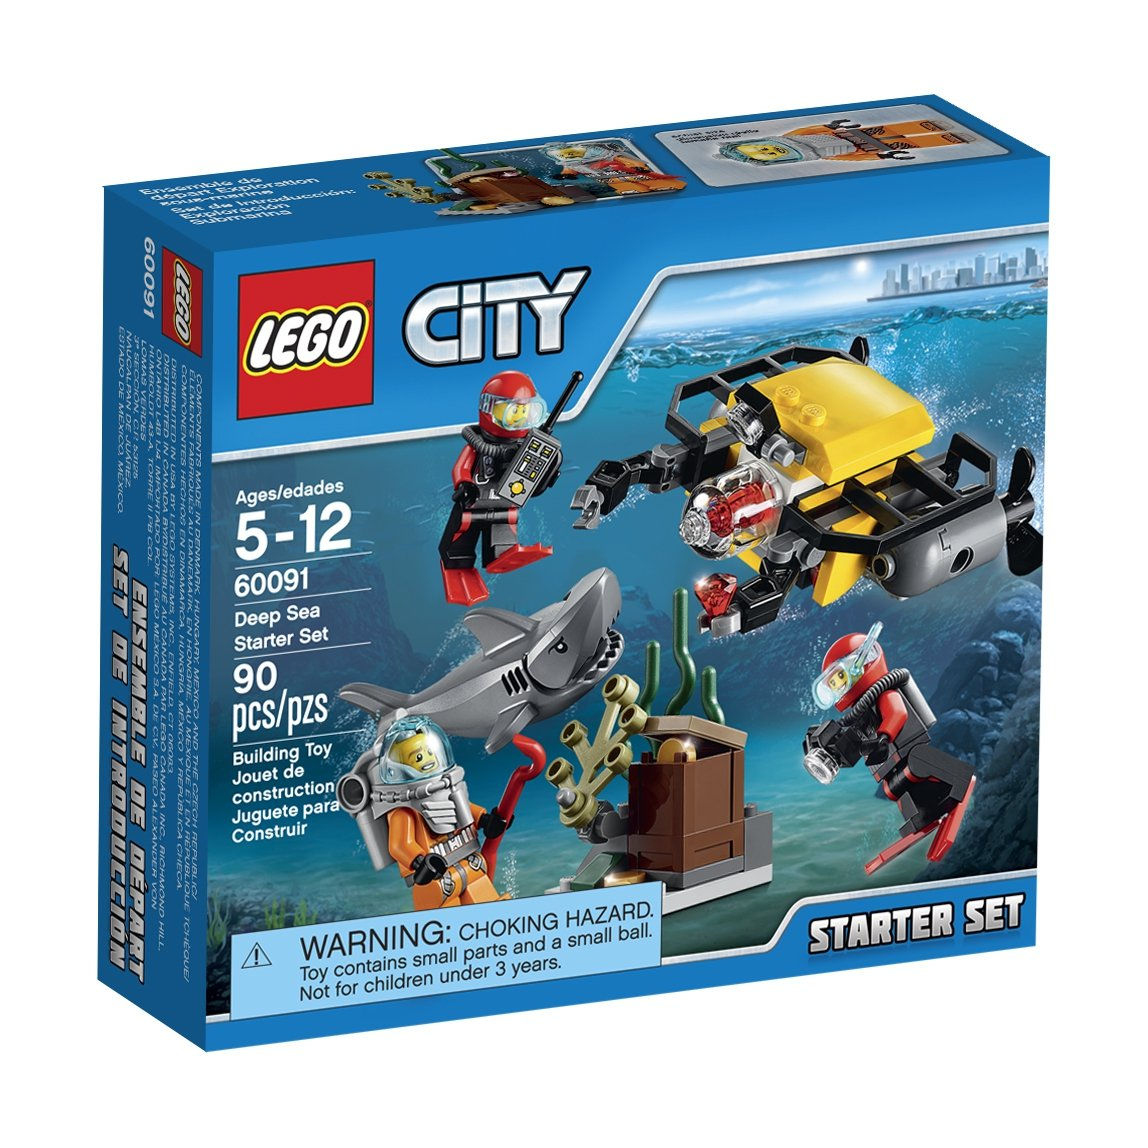 LEGO, City, Deep Sea Starter Set (60091)